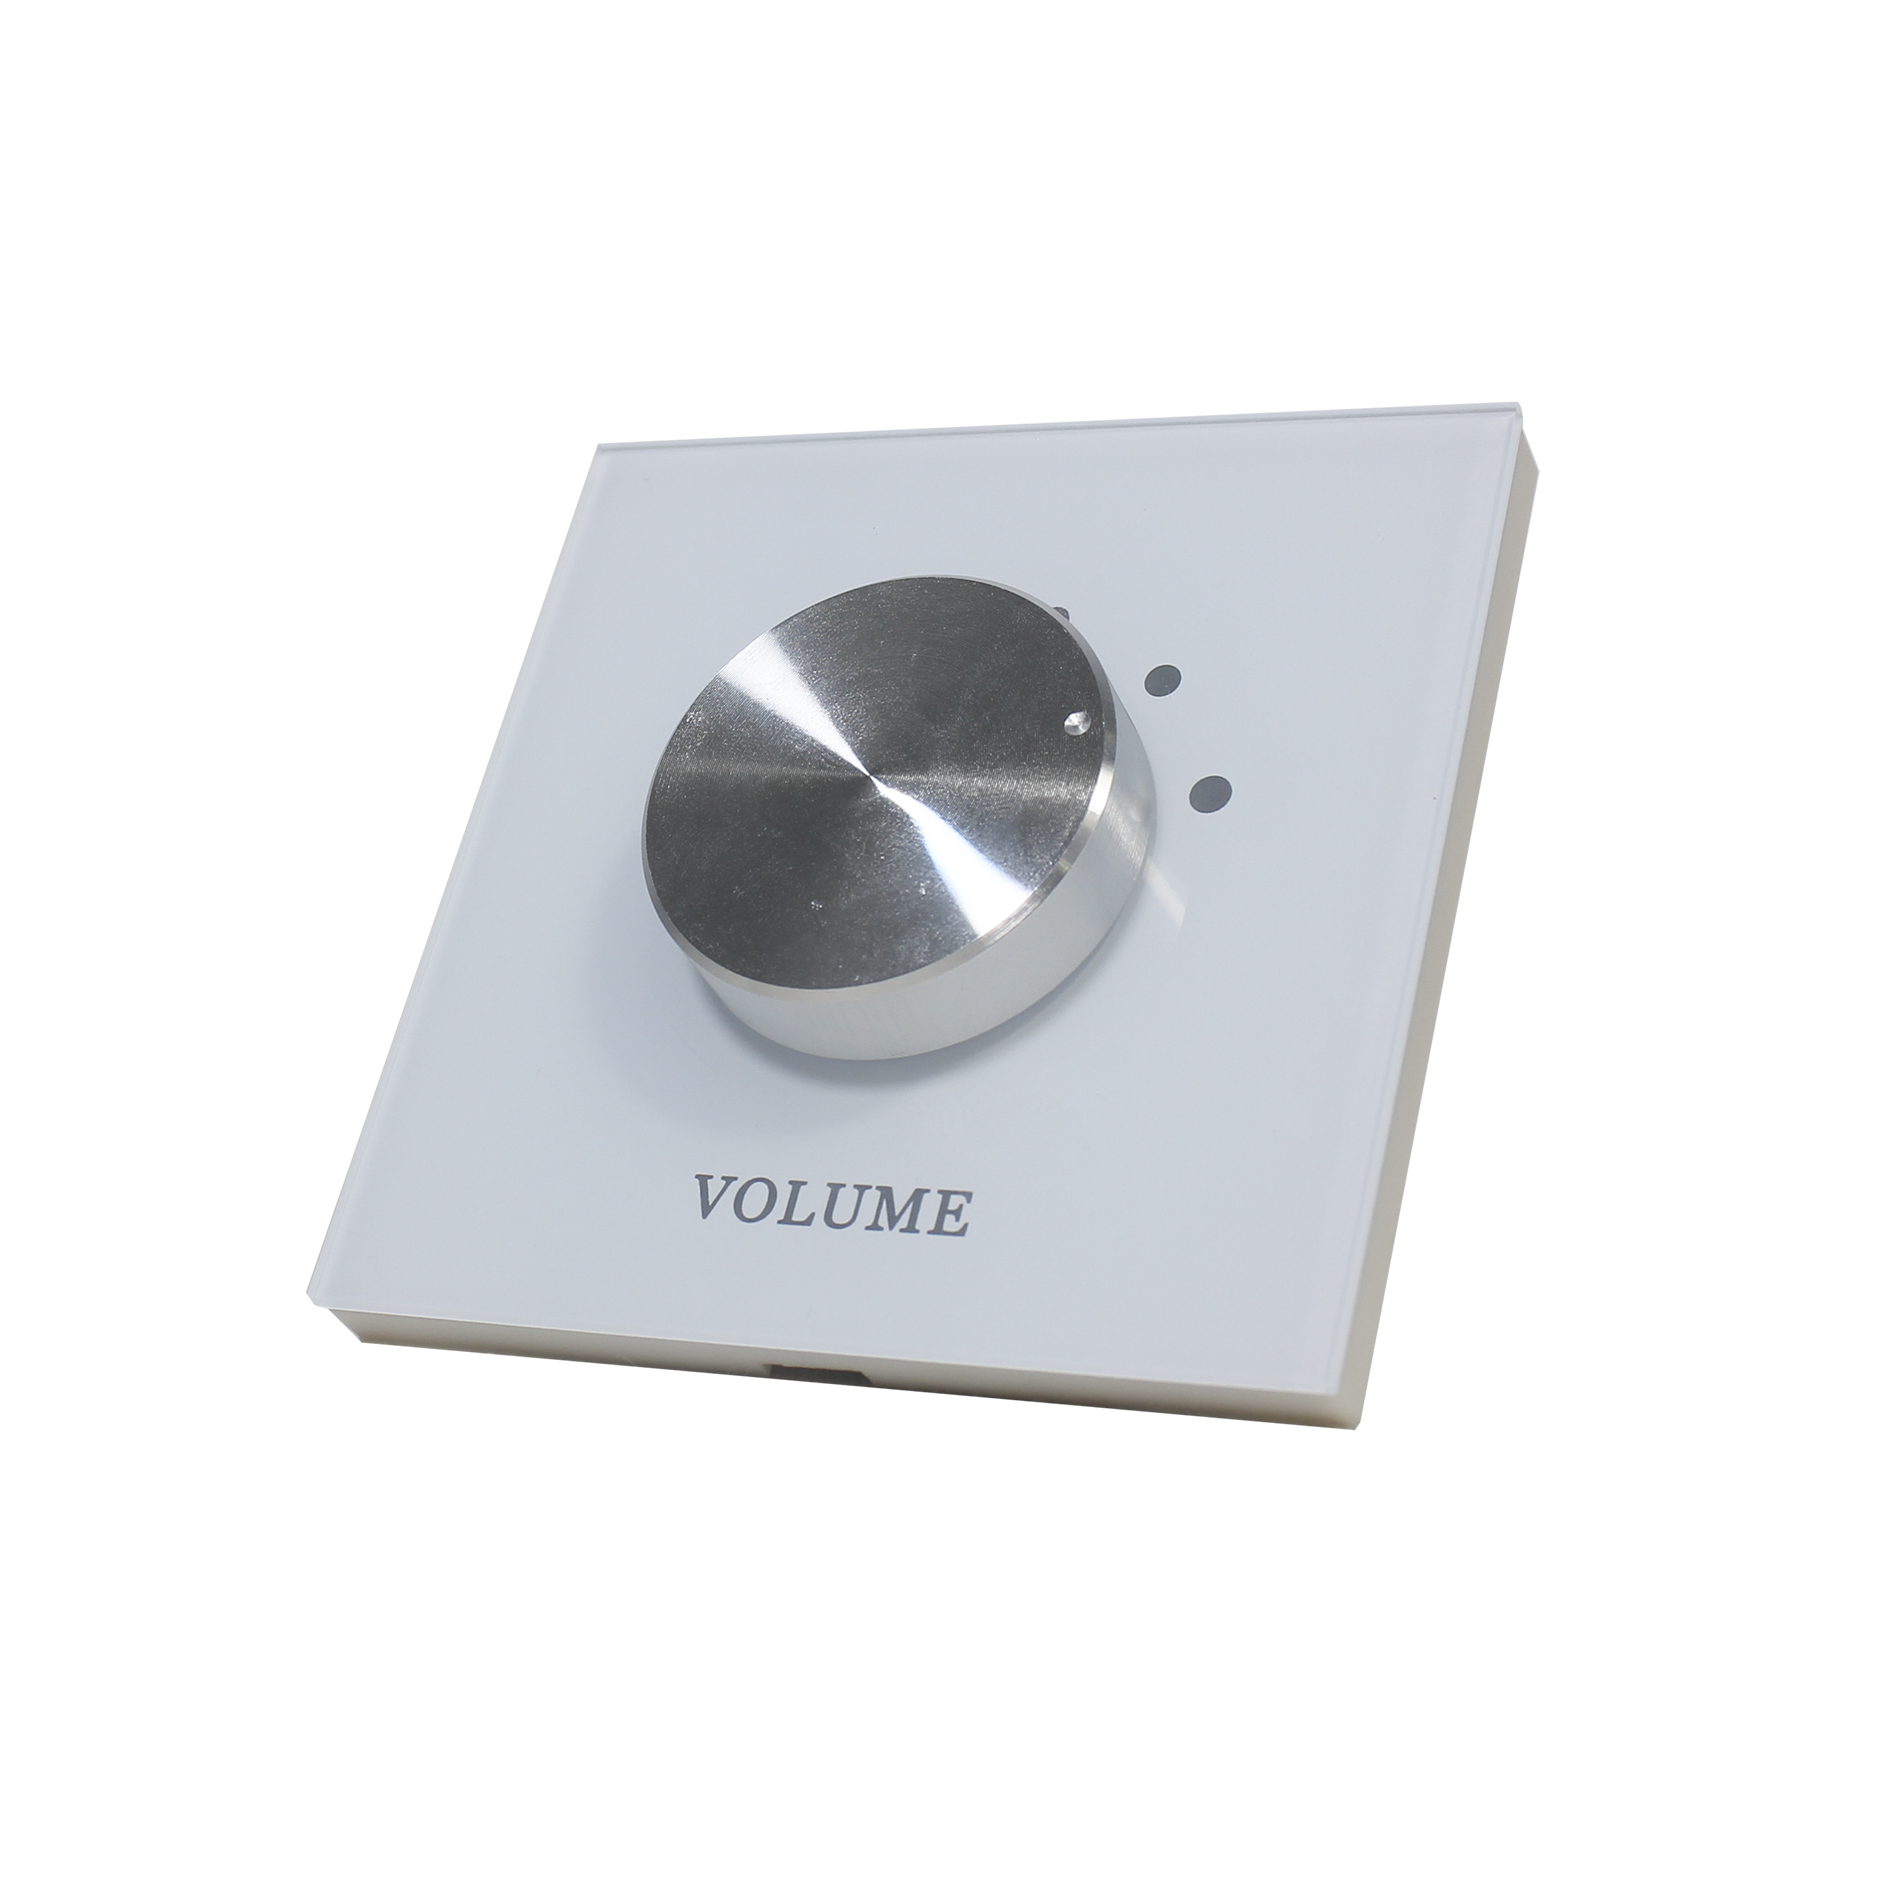 411236 High Quality Europe And China Standard Creative Stereo Volume Control